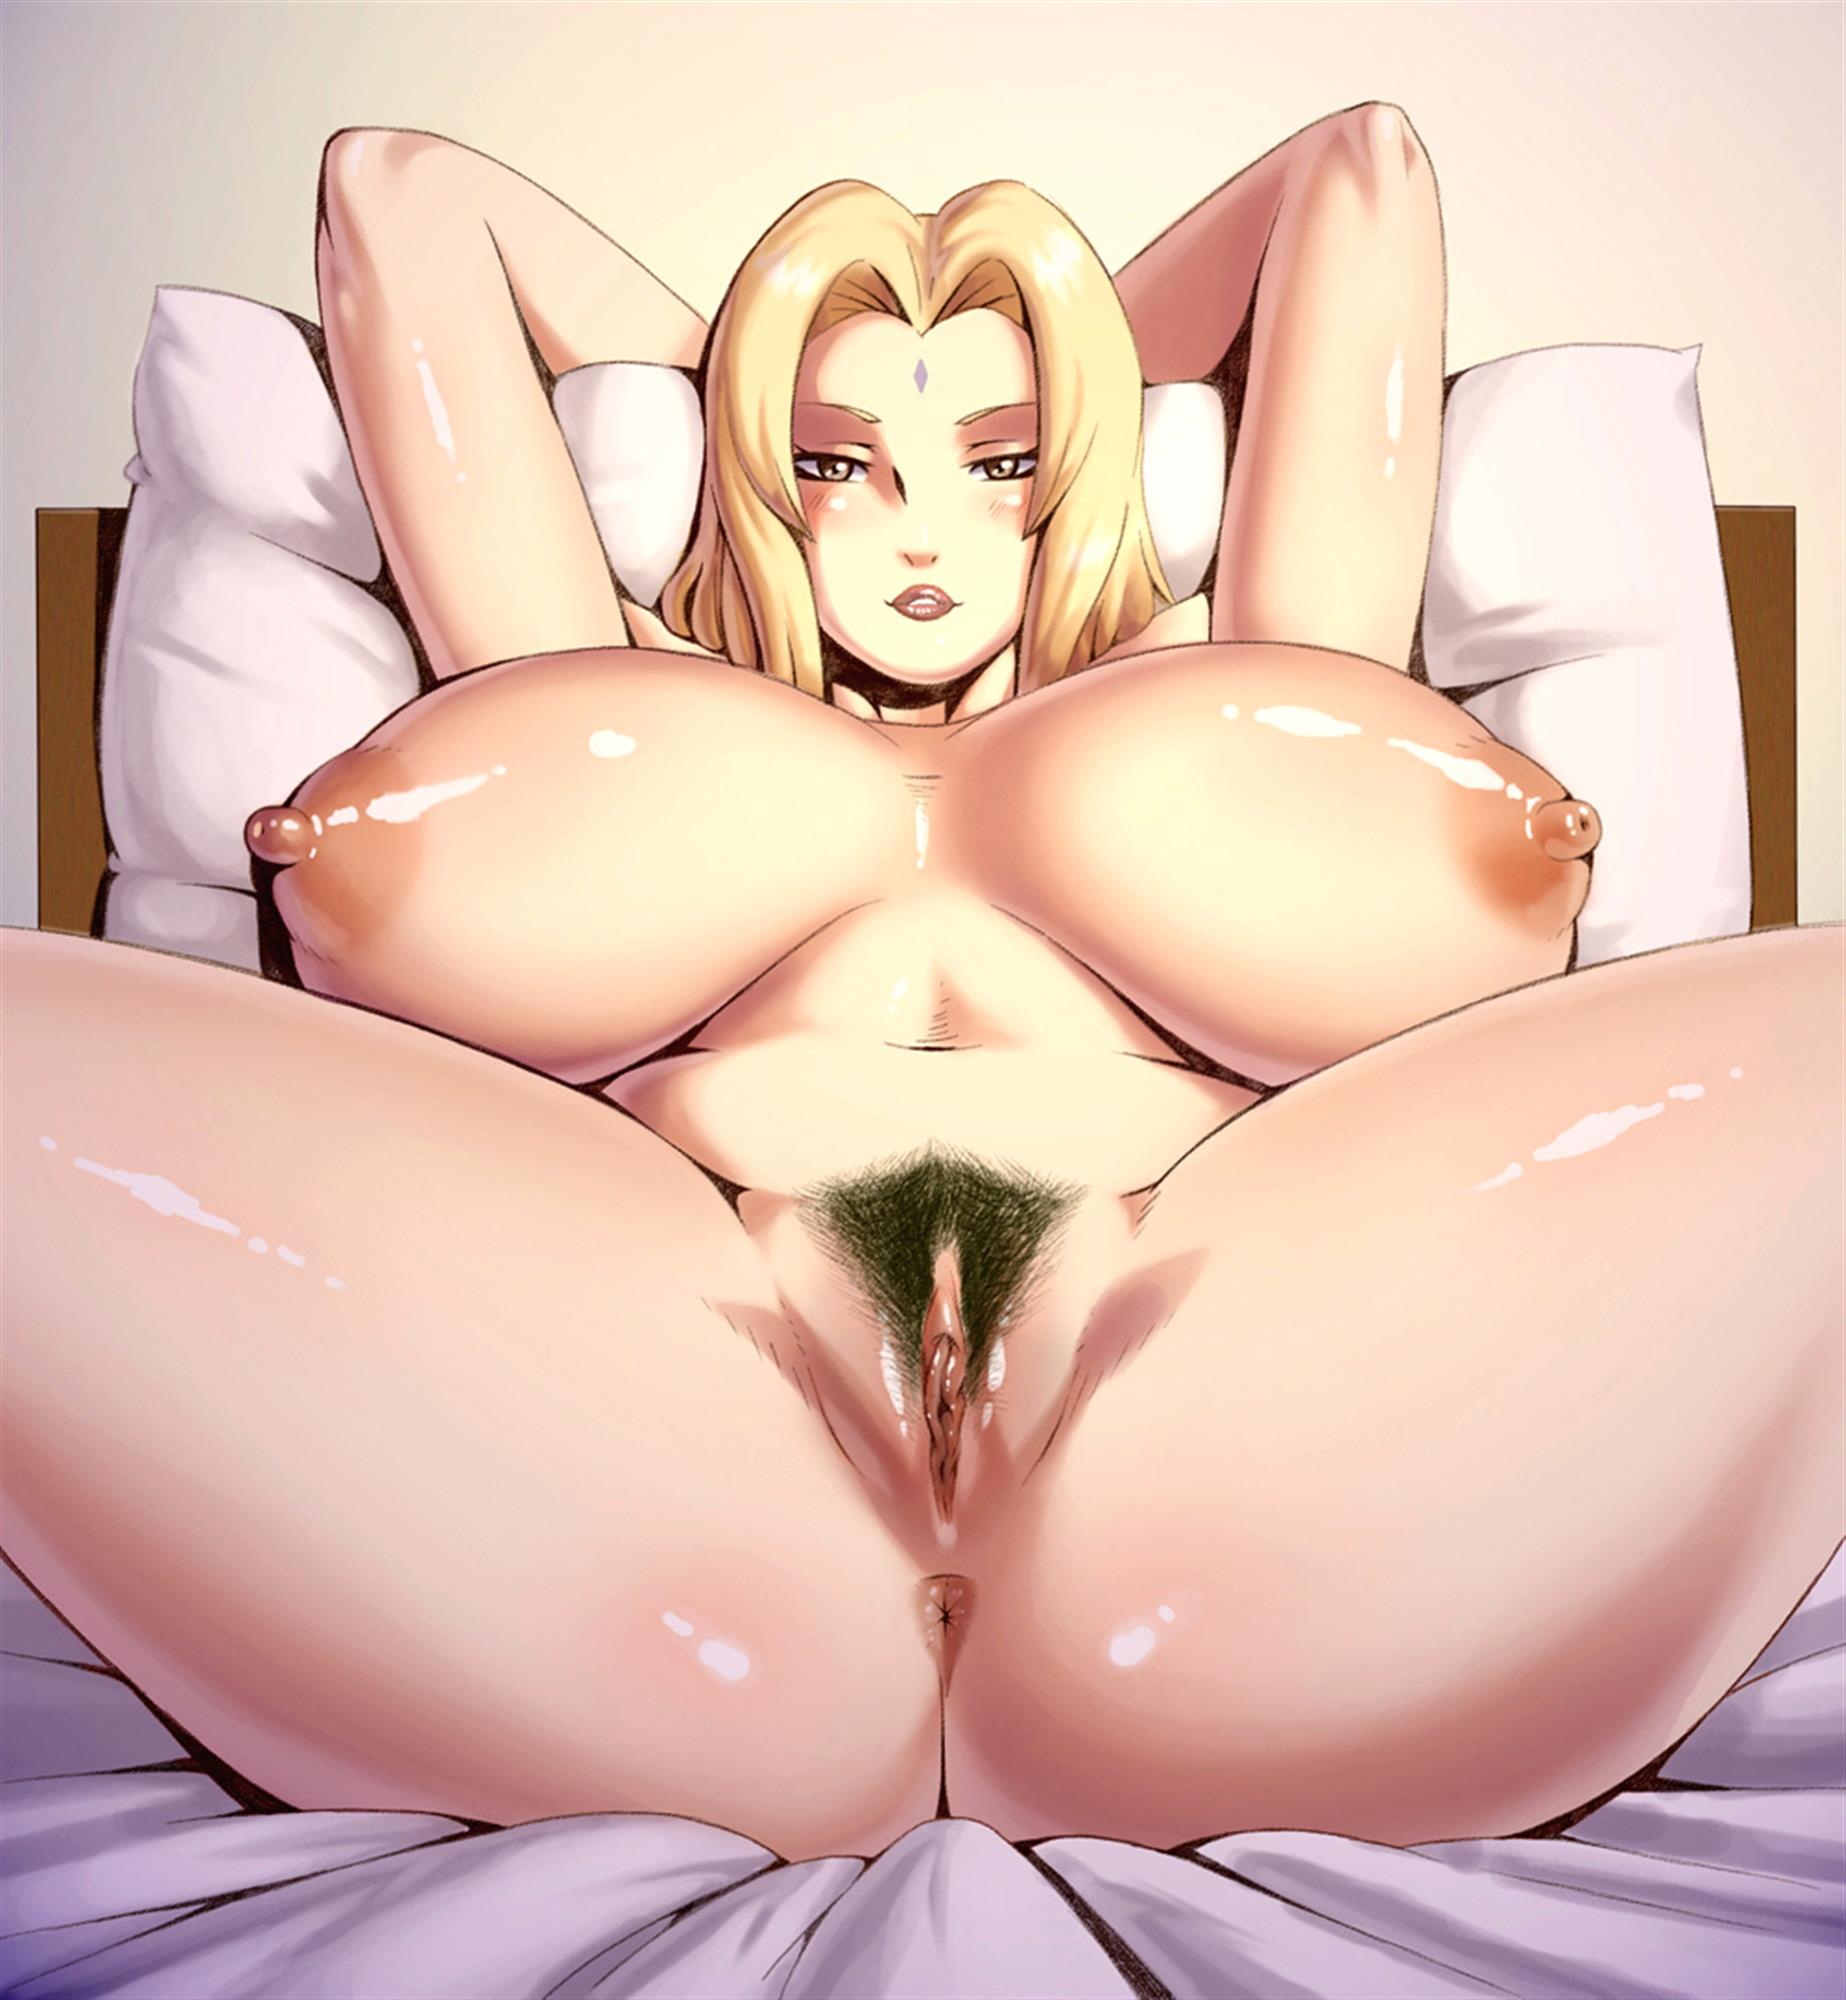 Tsunade senju hentai anime sex games